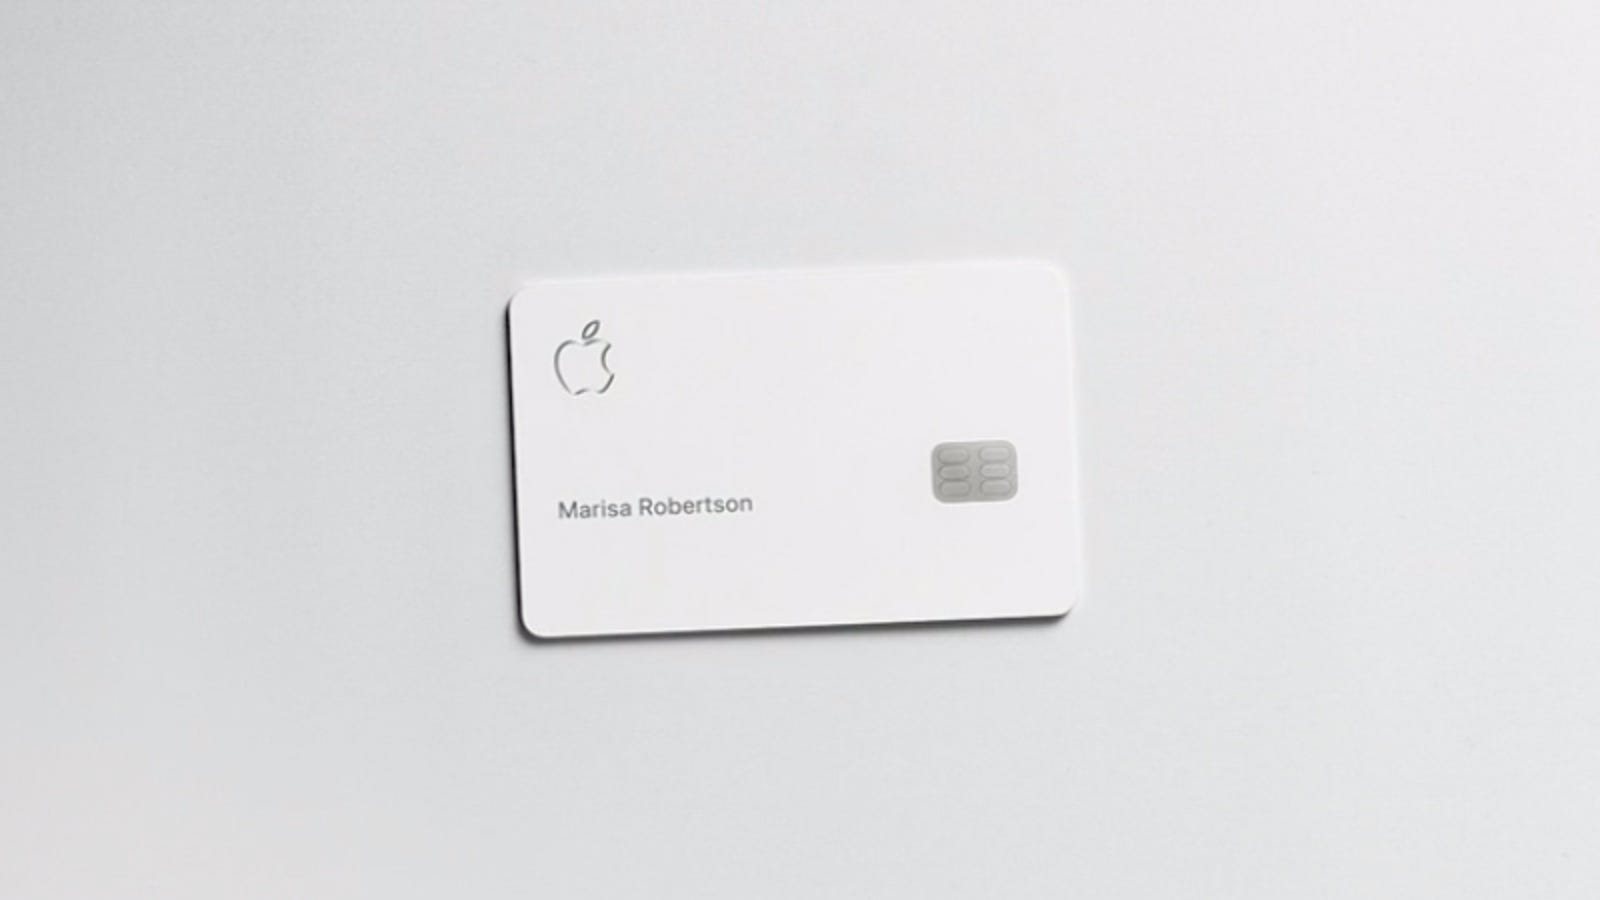 QnA VBage Apple Promises Its New Credit Card Is a Privacy-Protecting Beast